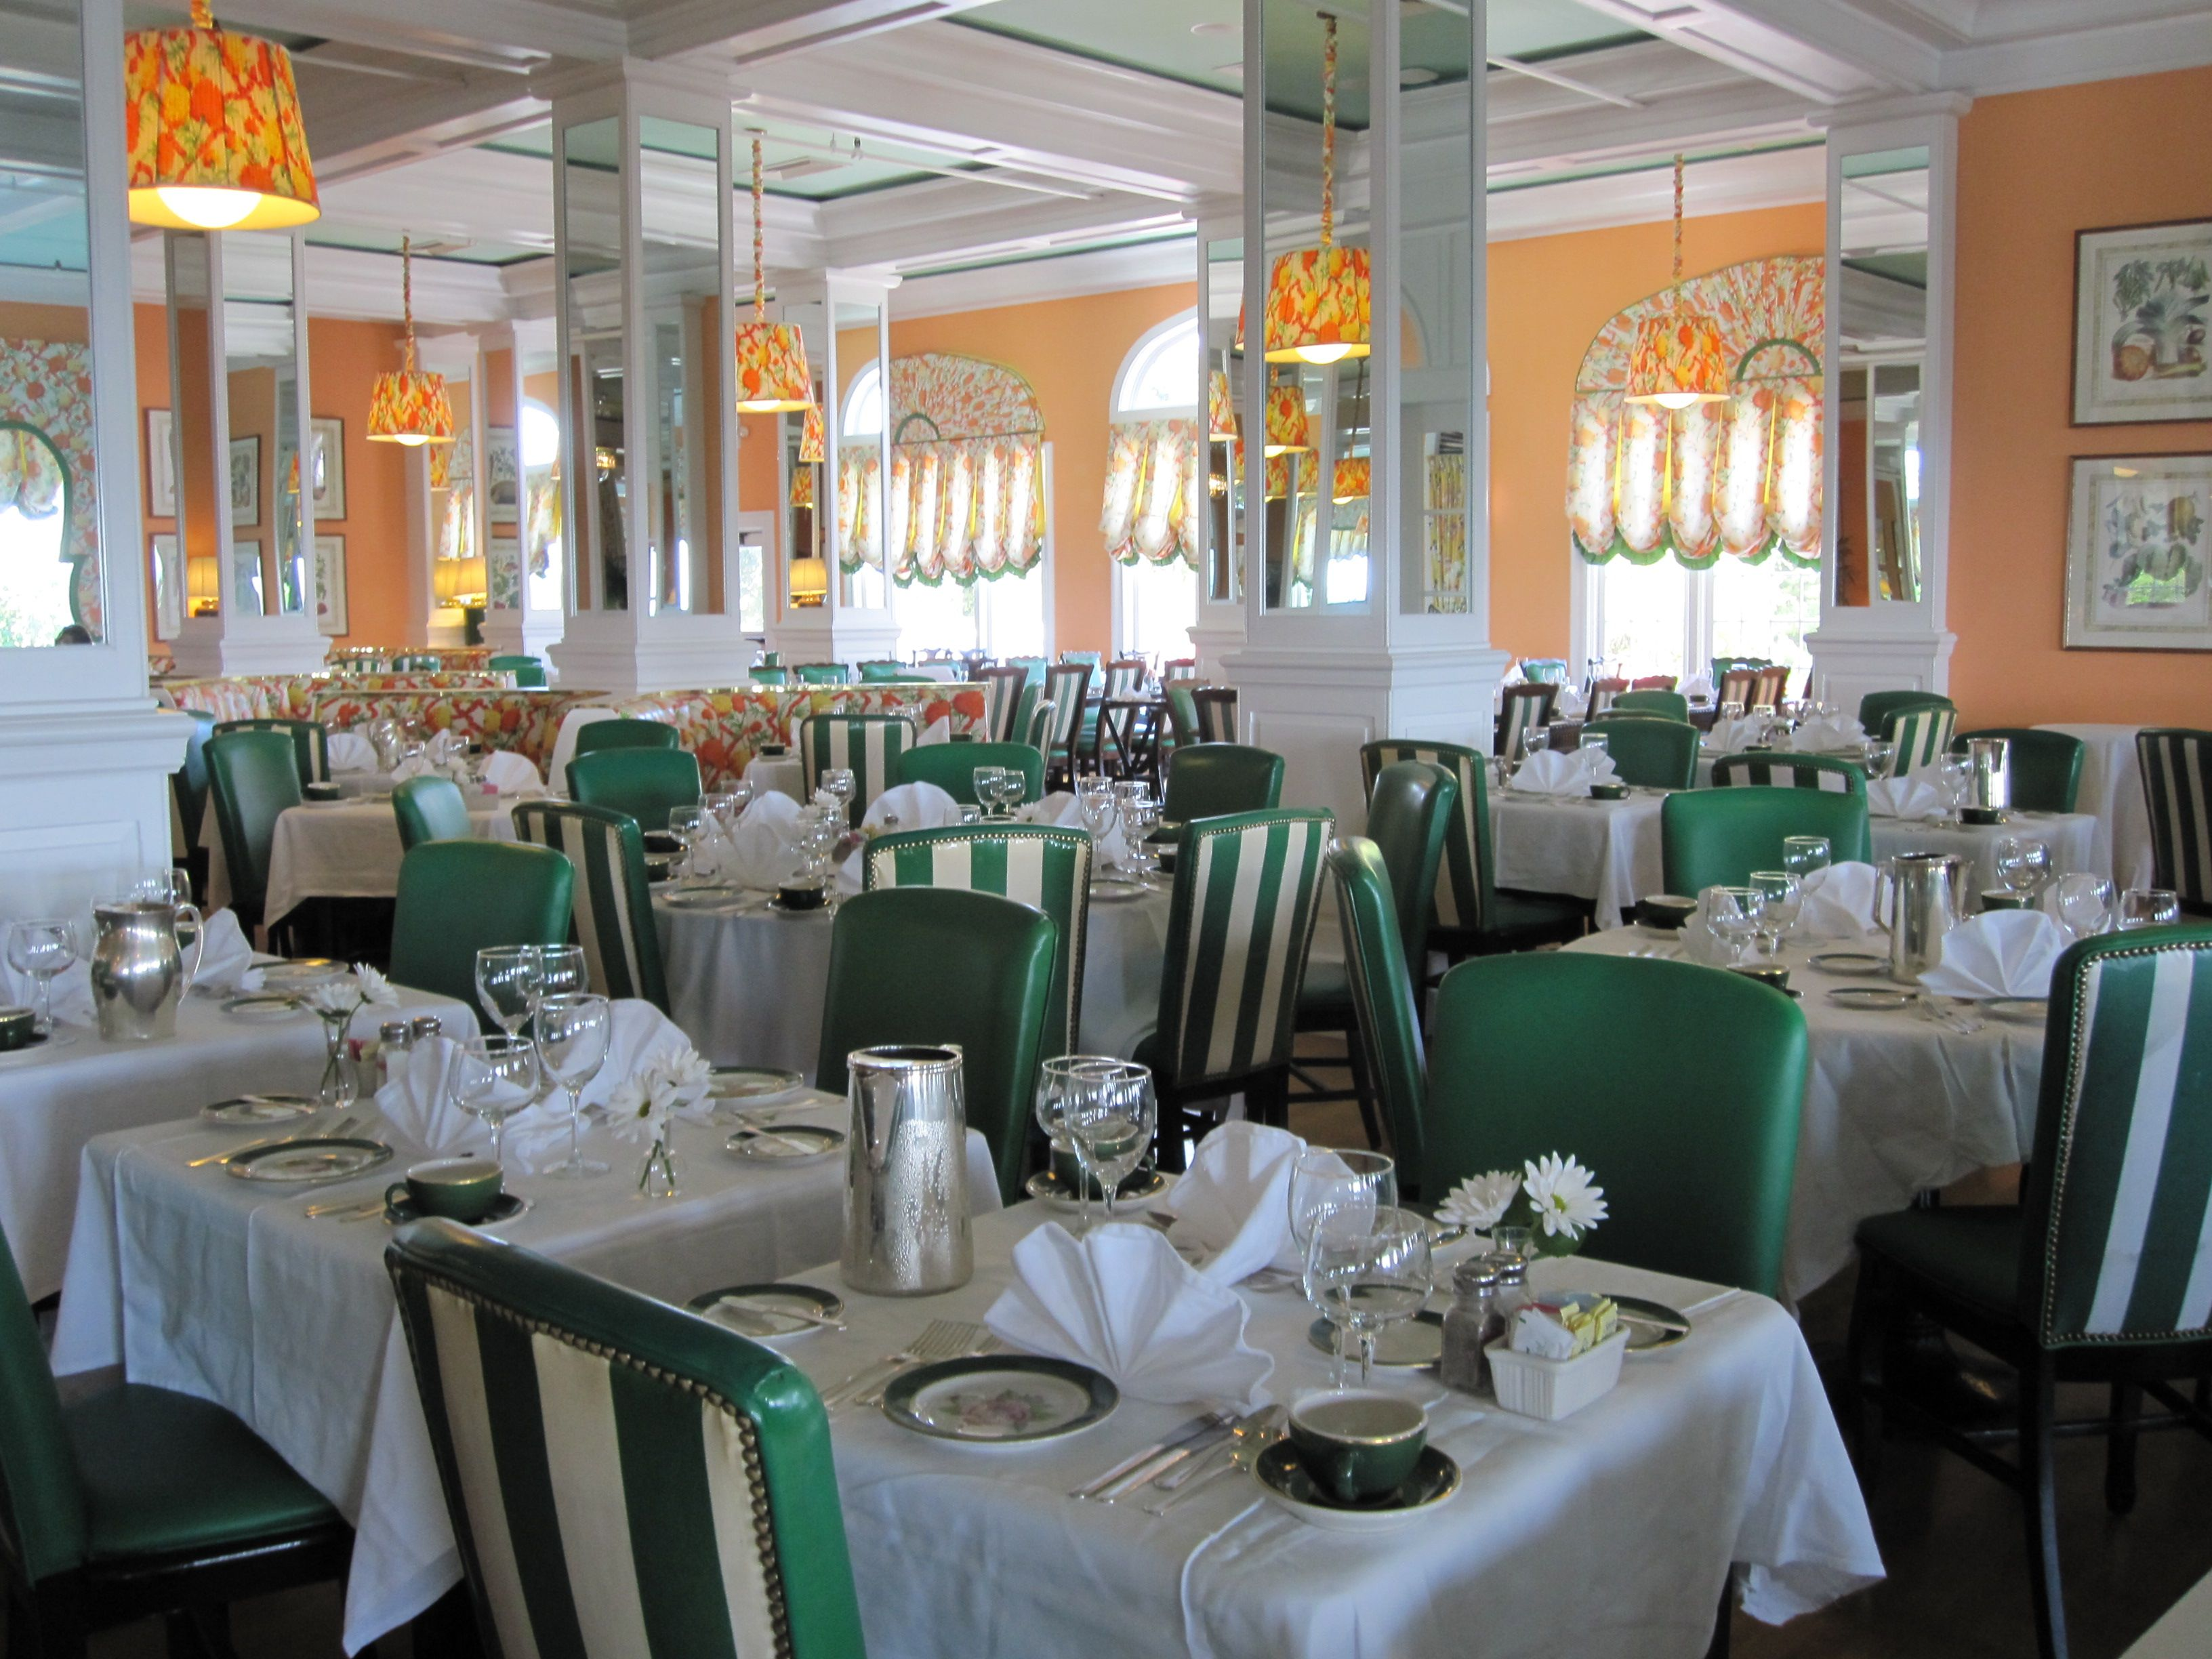 rooms family dining with you createfullcircle will room gather friends grand com where and l